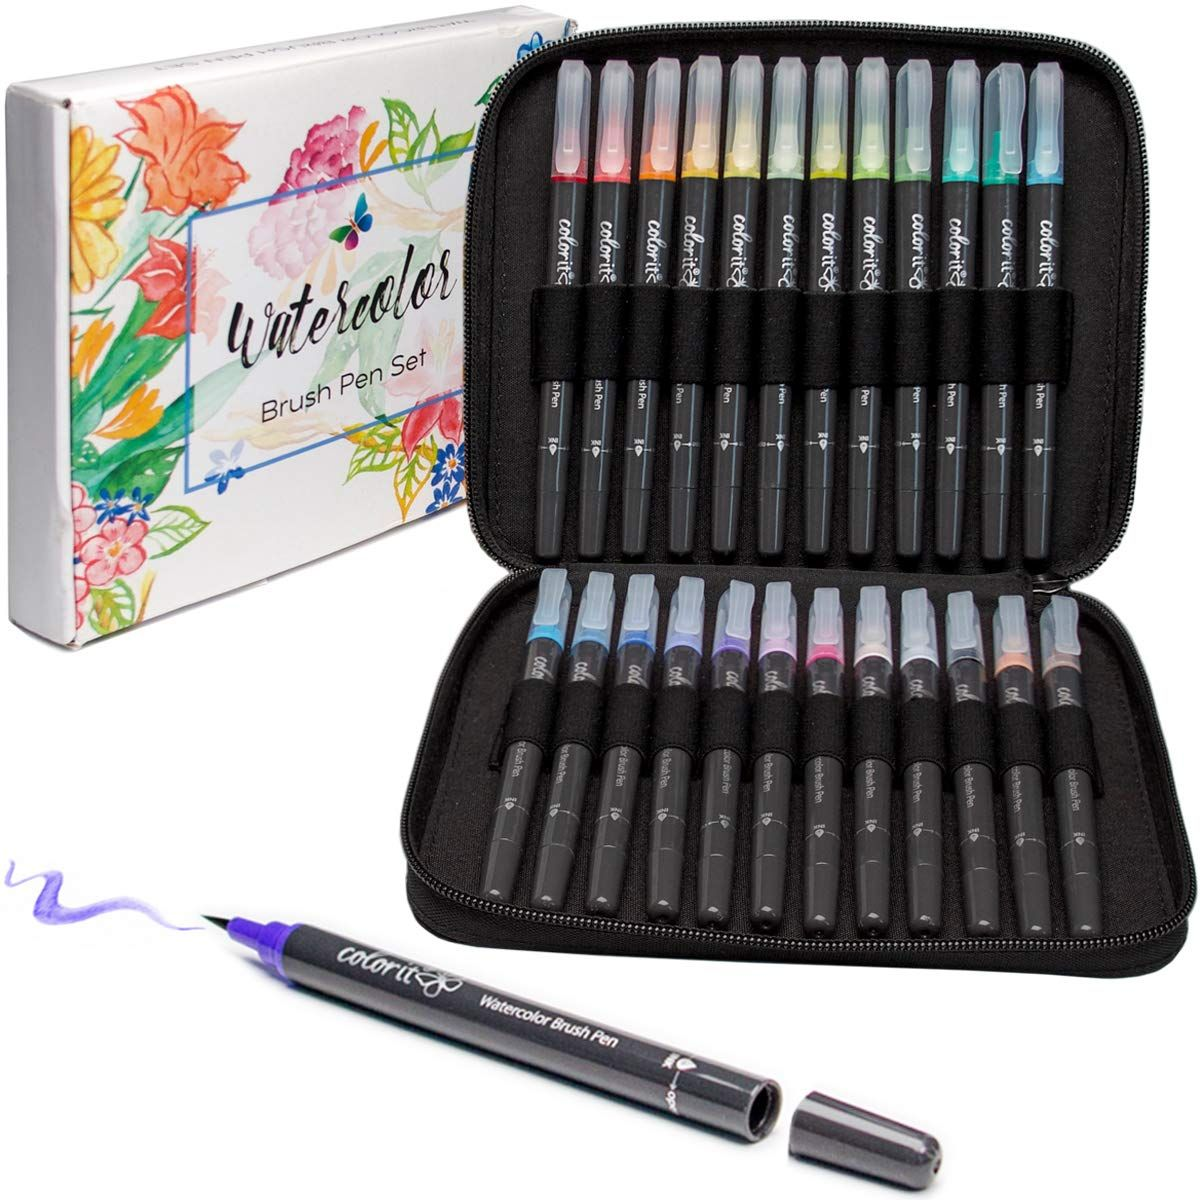 Colorit Refillable Watercolor Brush Pens Set 24 Colors With